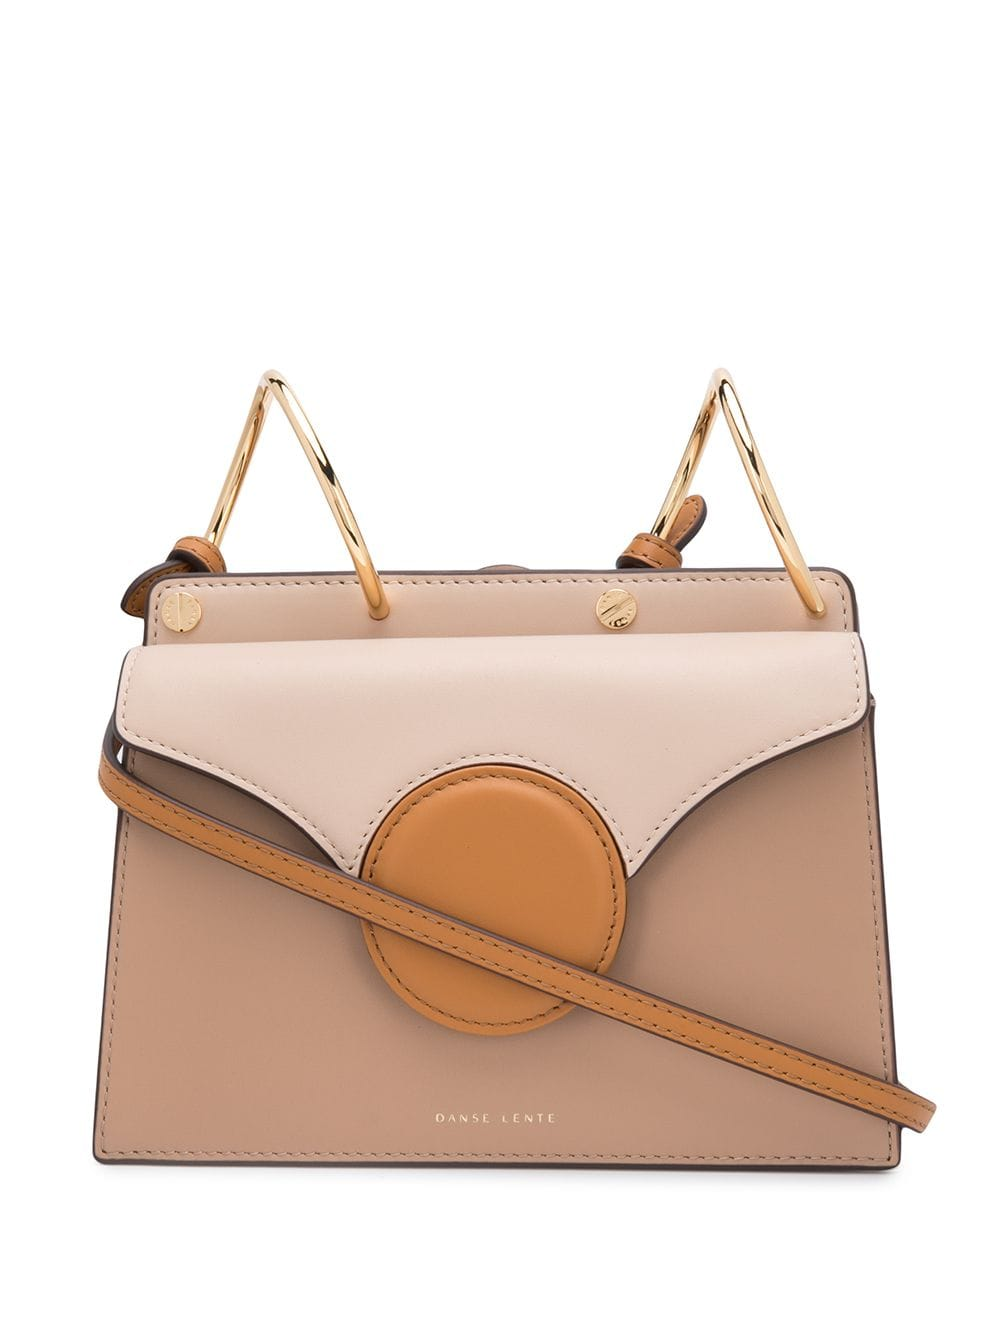 Mini Phoebe Leather Handbag